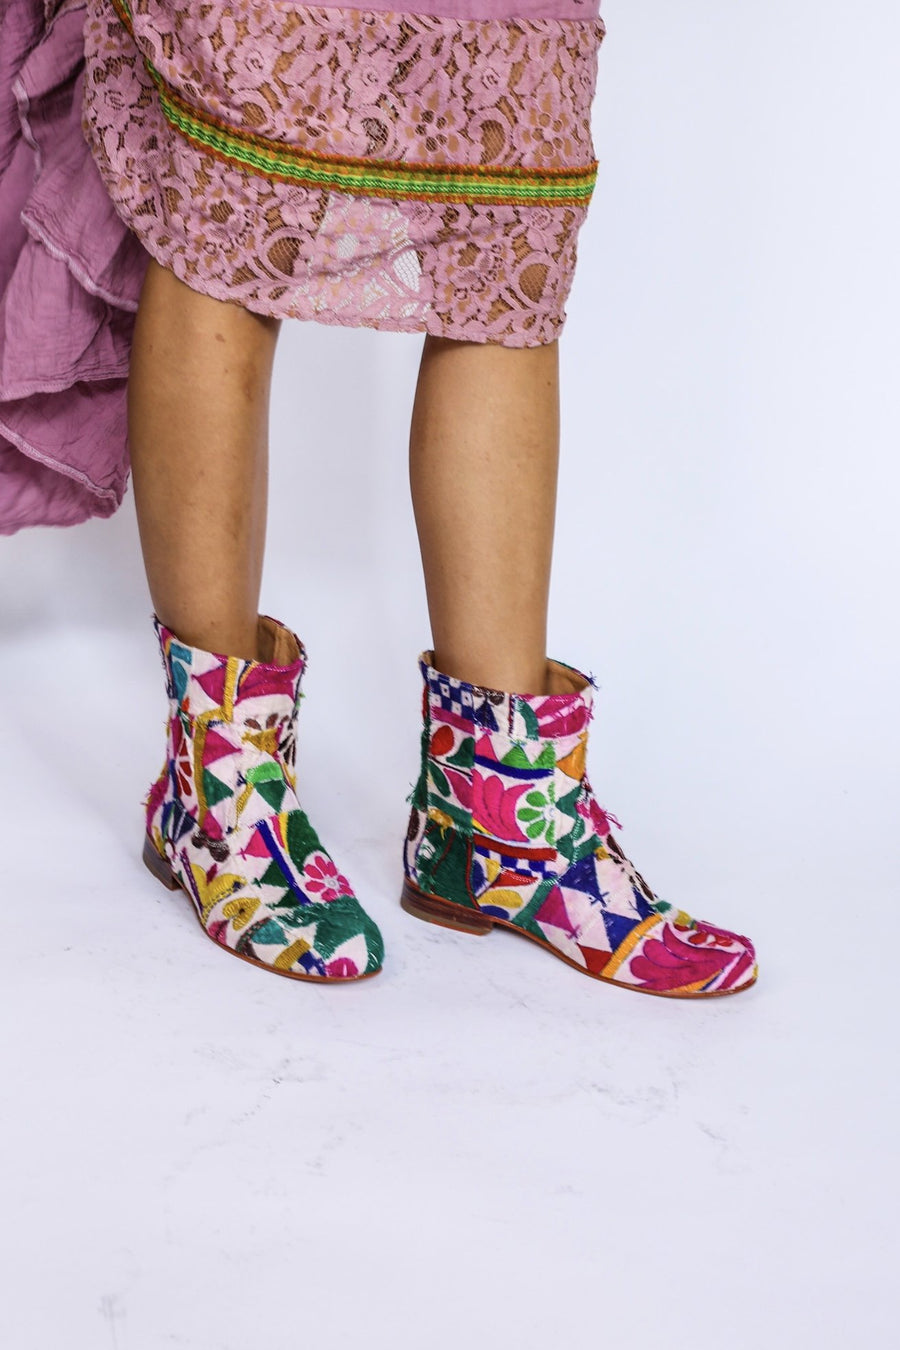 MOMONEWYORK MOMO Embroidered Patchwork Boots Romy